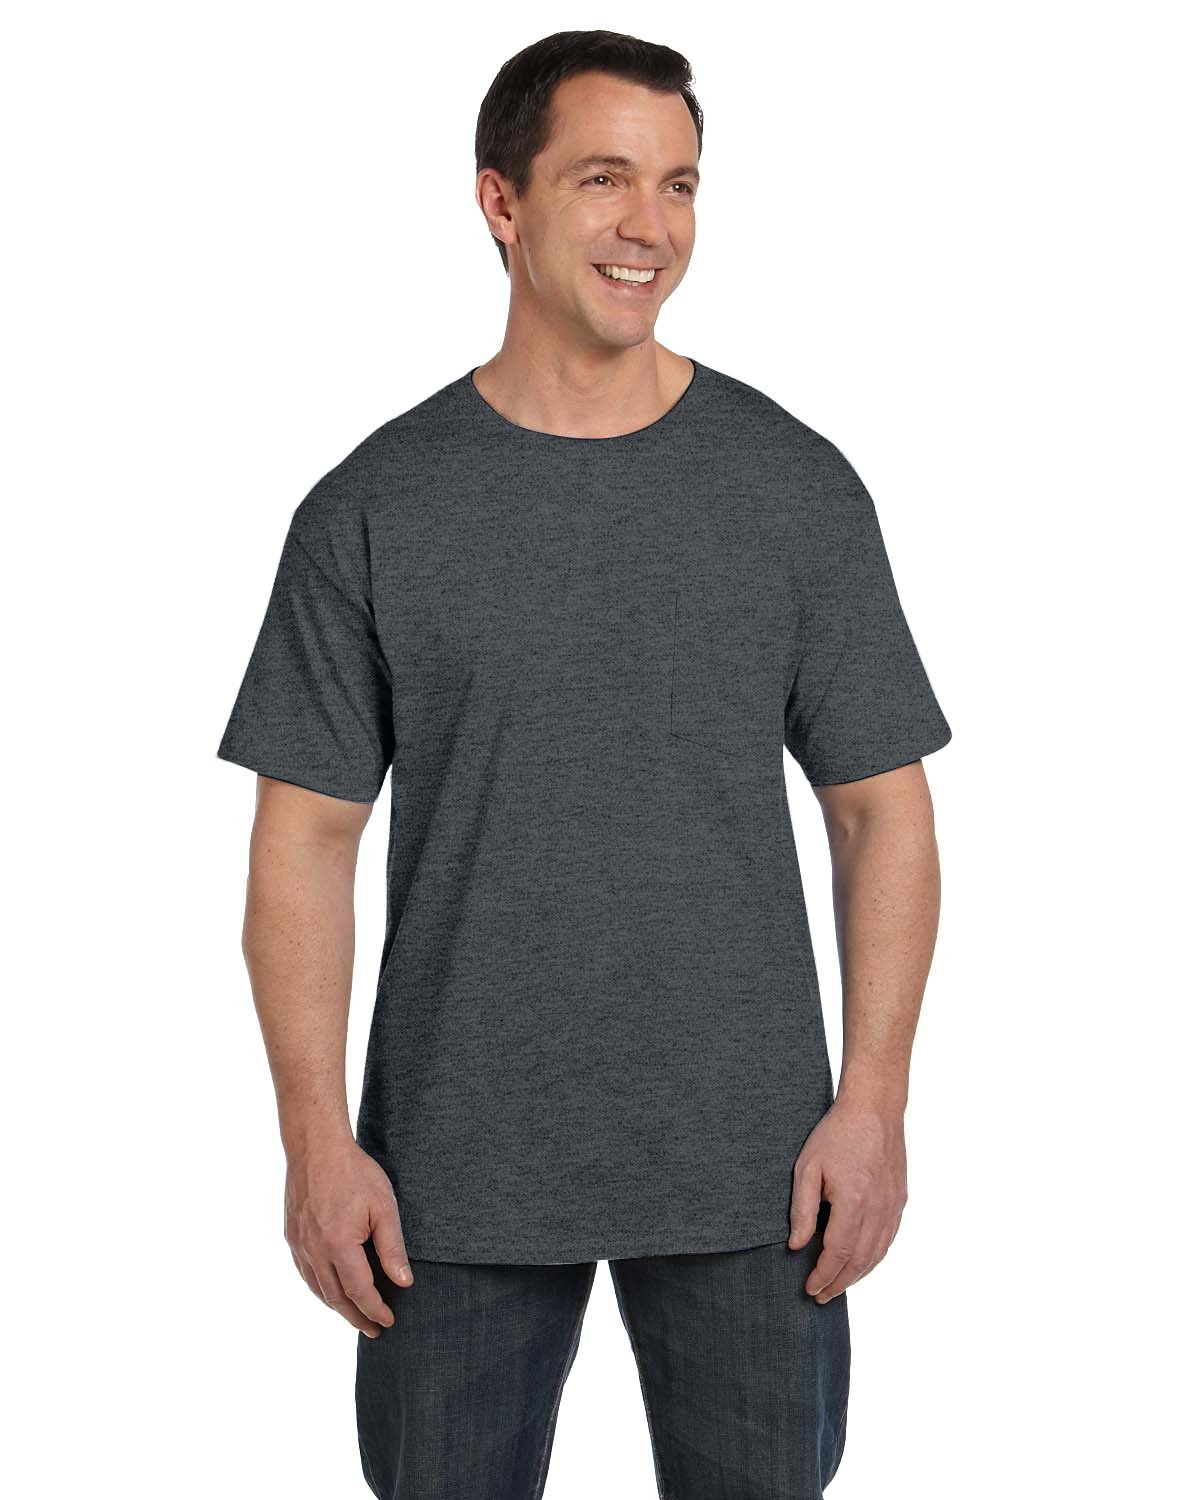 Hanes Adult Beefy-T® with Pocket CHARCOAL HEATHER